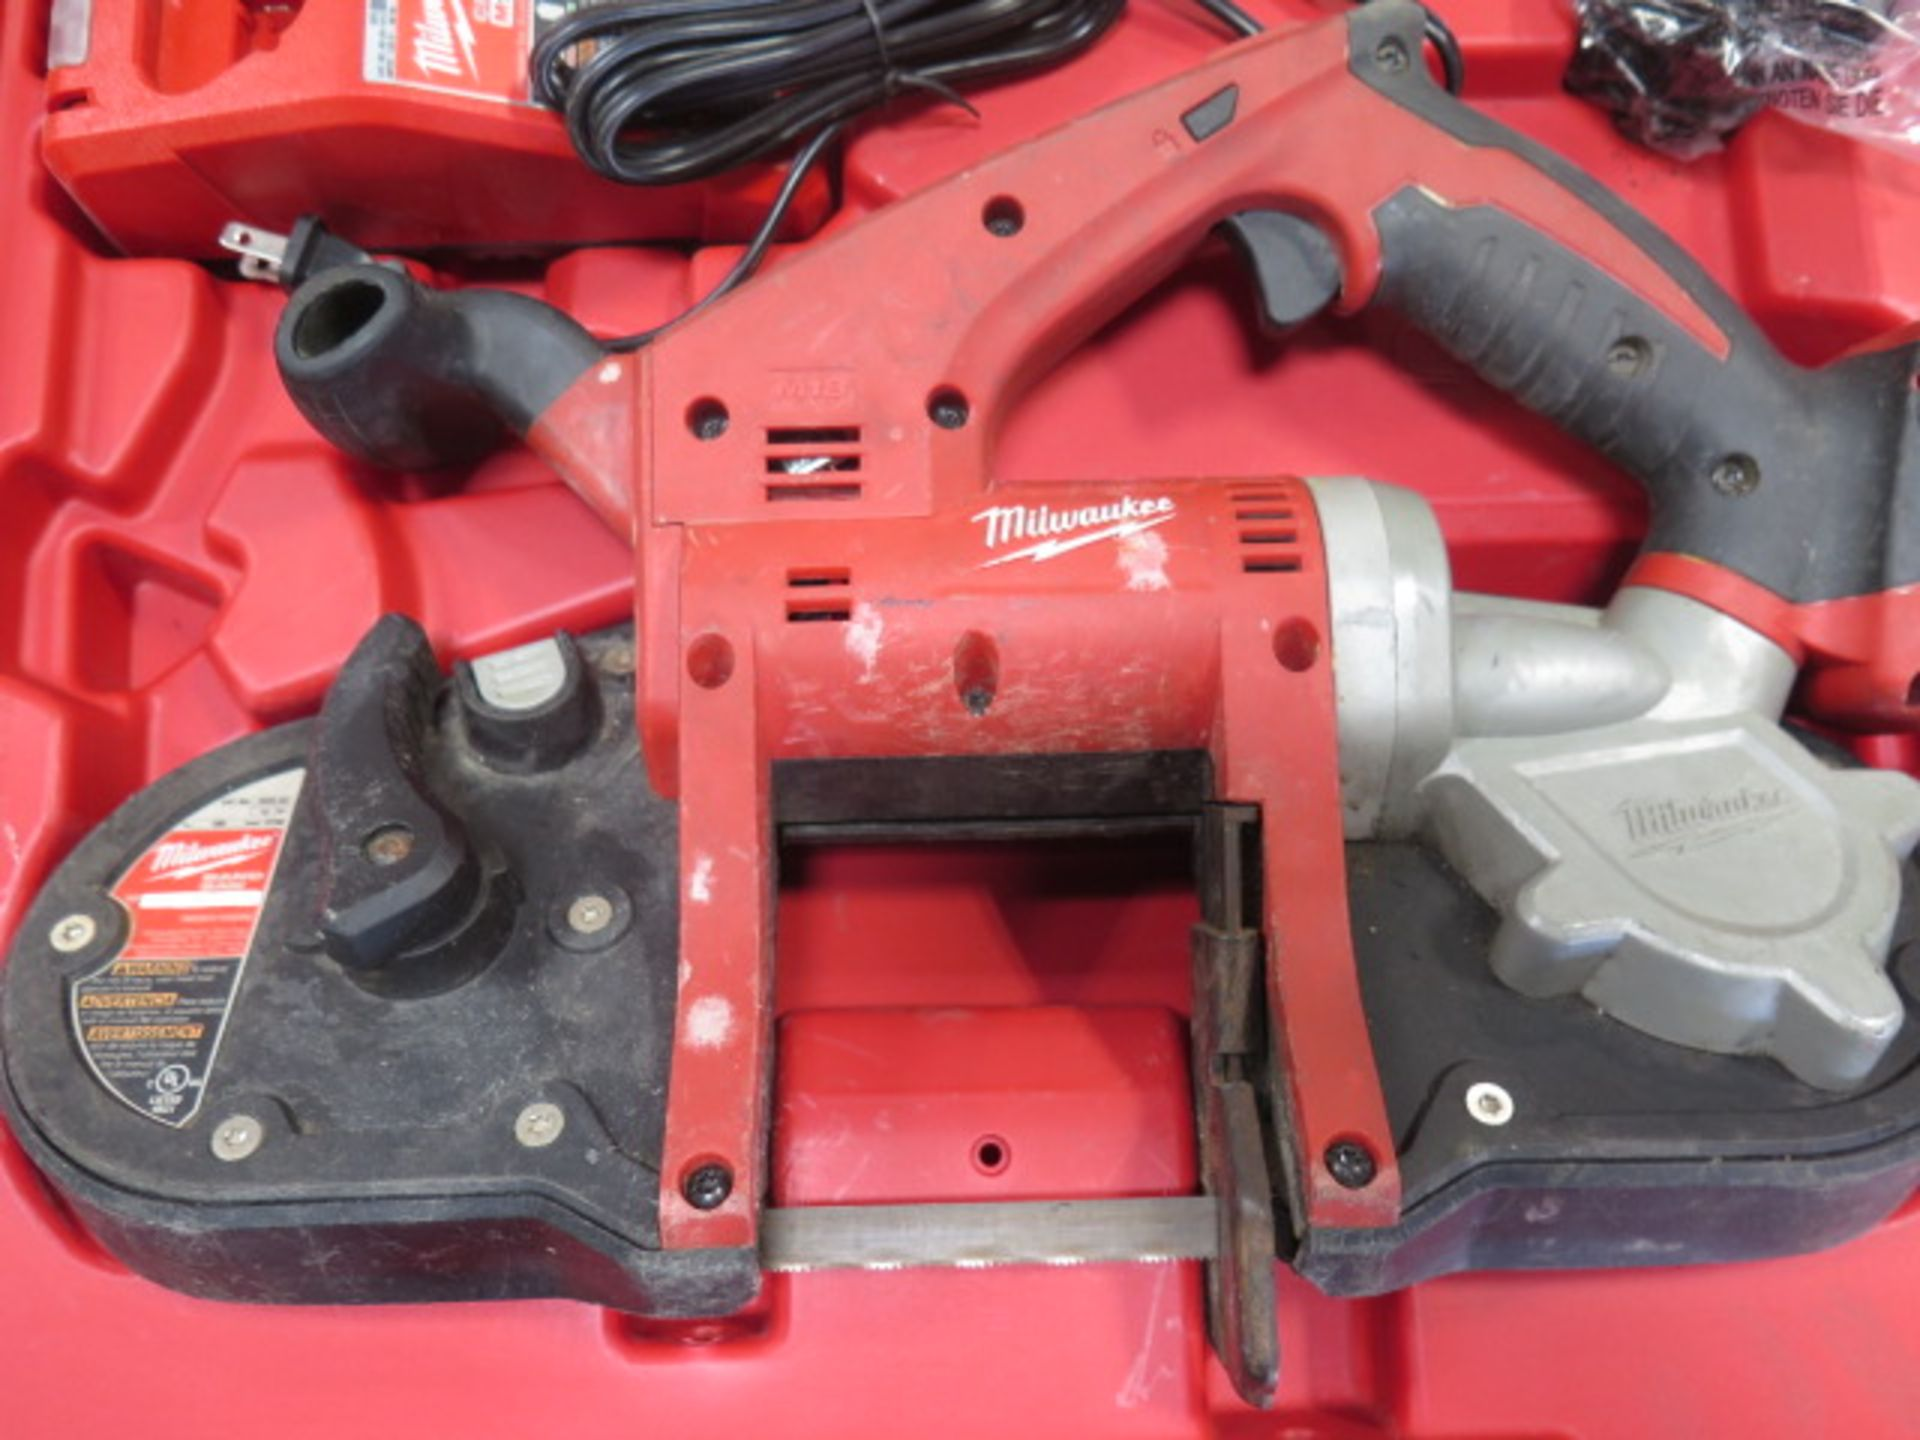 Milwaukee 18 Volt Compact Portable Band Saw Sets (2) (SOLD AS-IS - NO WARRANTY) - Image 4 of 10